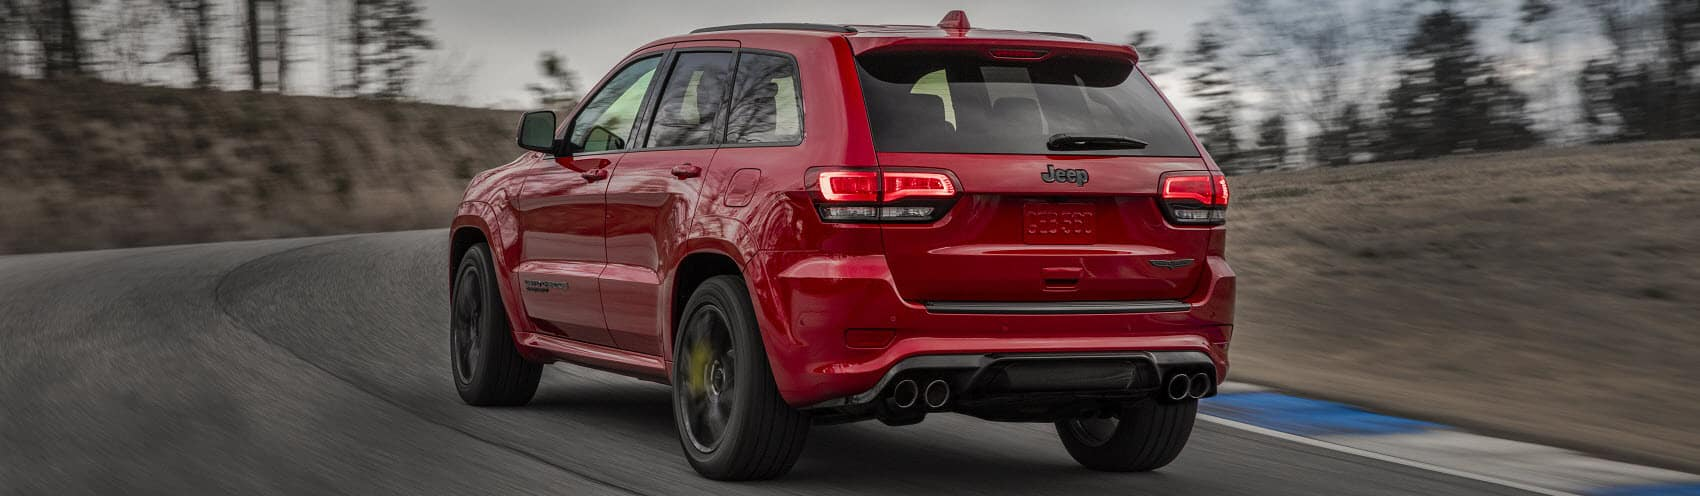 Jeep Grand Cherokee Vs Toyota 4runner >> Jeep Grand Cherokee Vs Toyota 4runner Medford Ma Grava